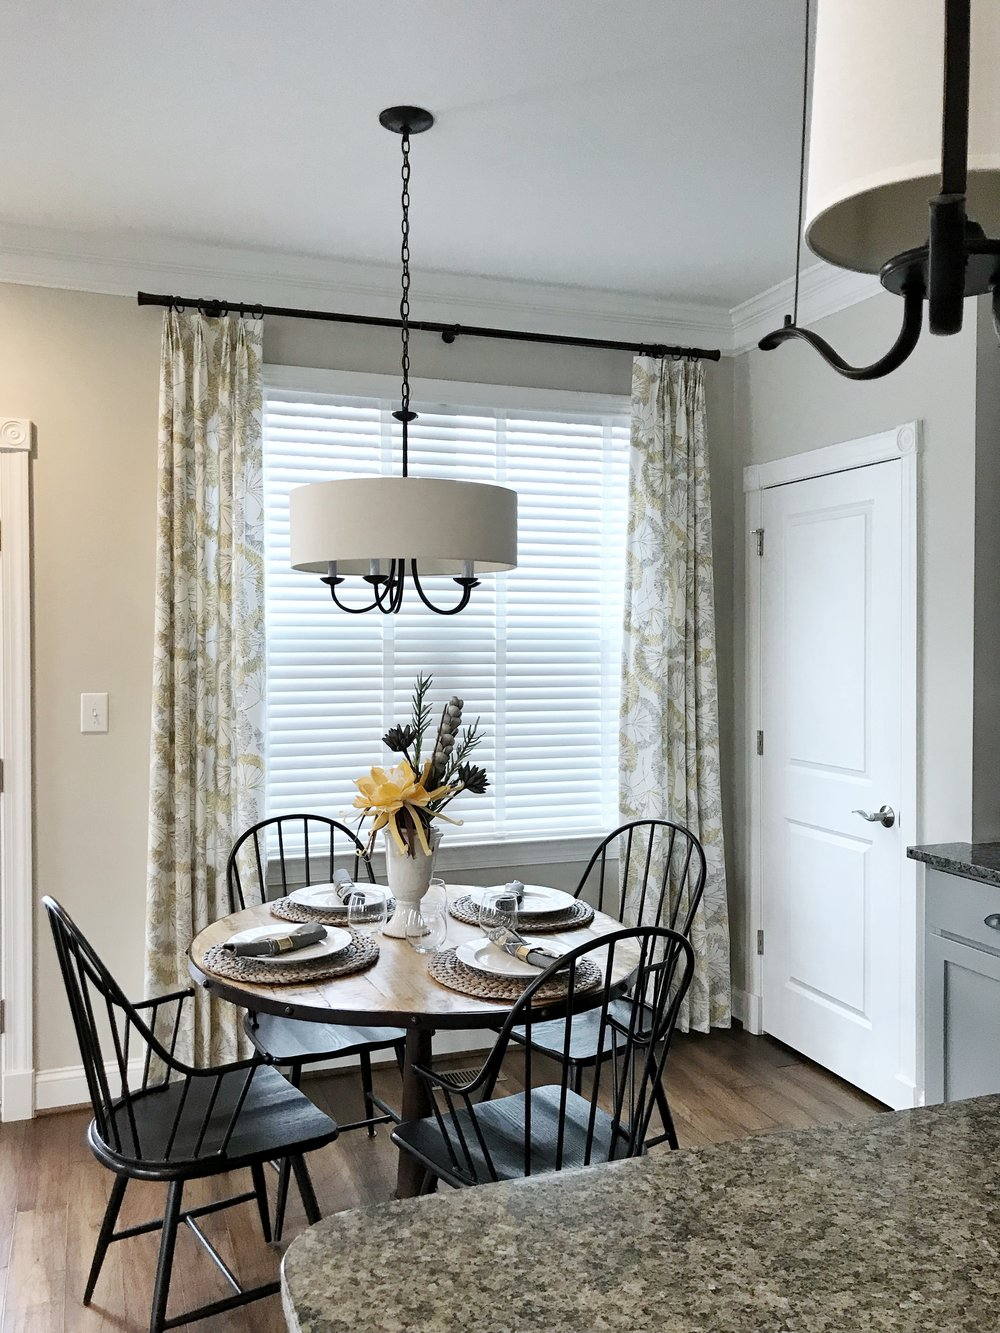 3rdGenBlinds white custom window blinds by kitchen table